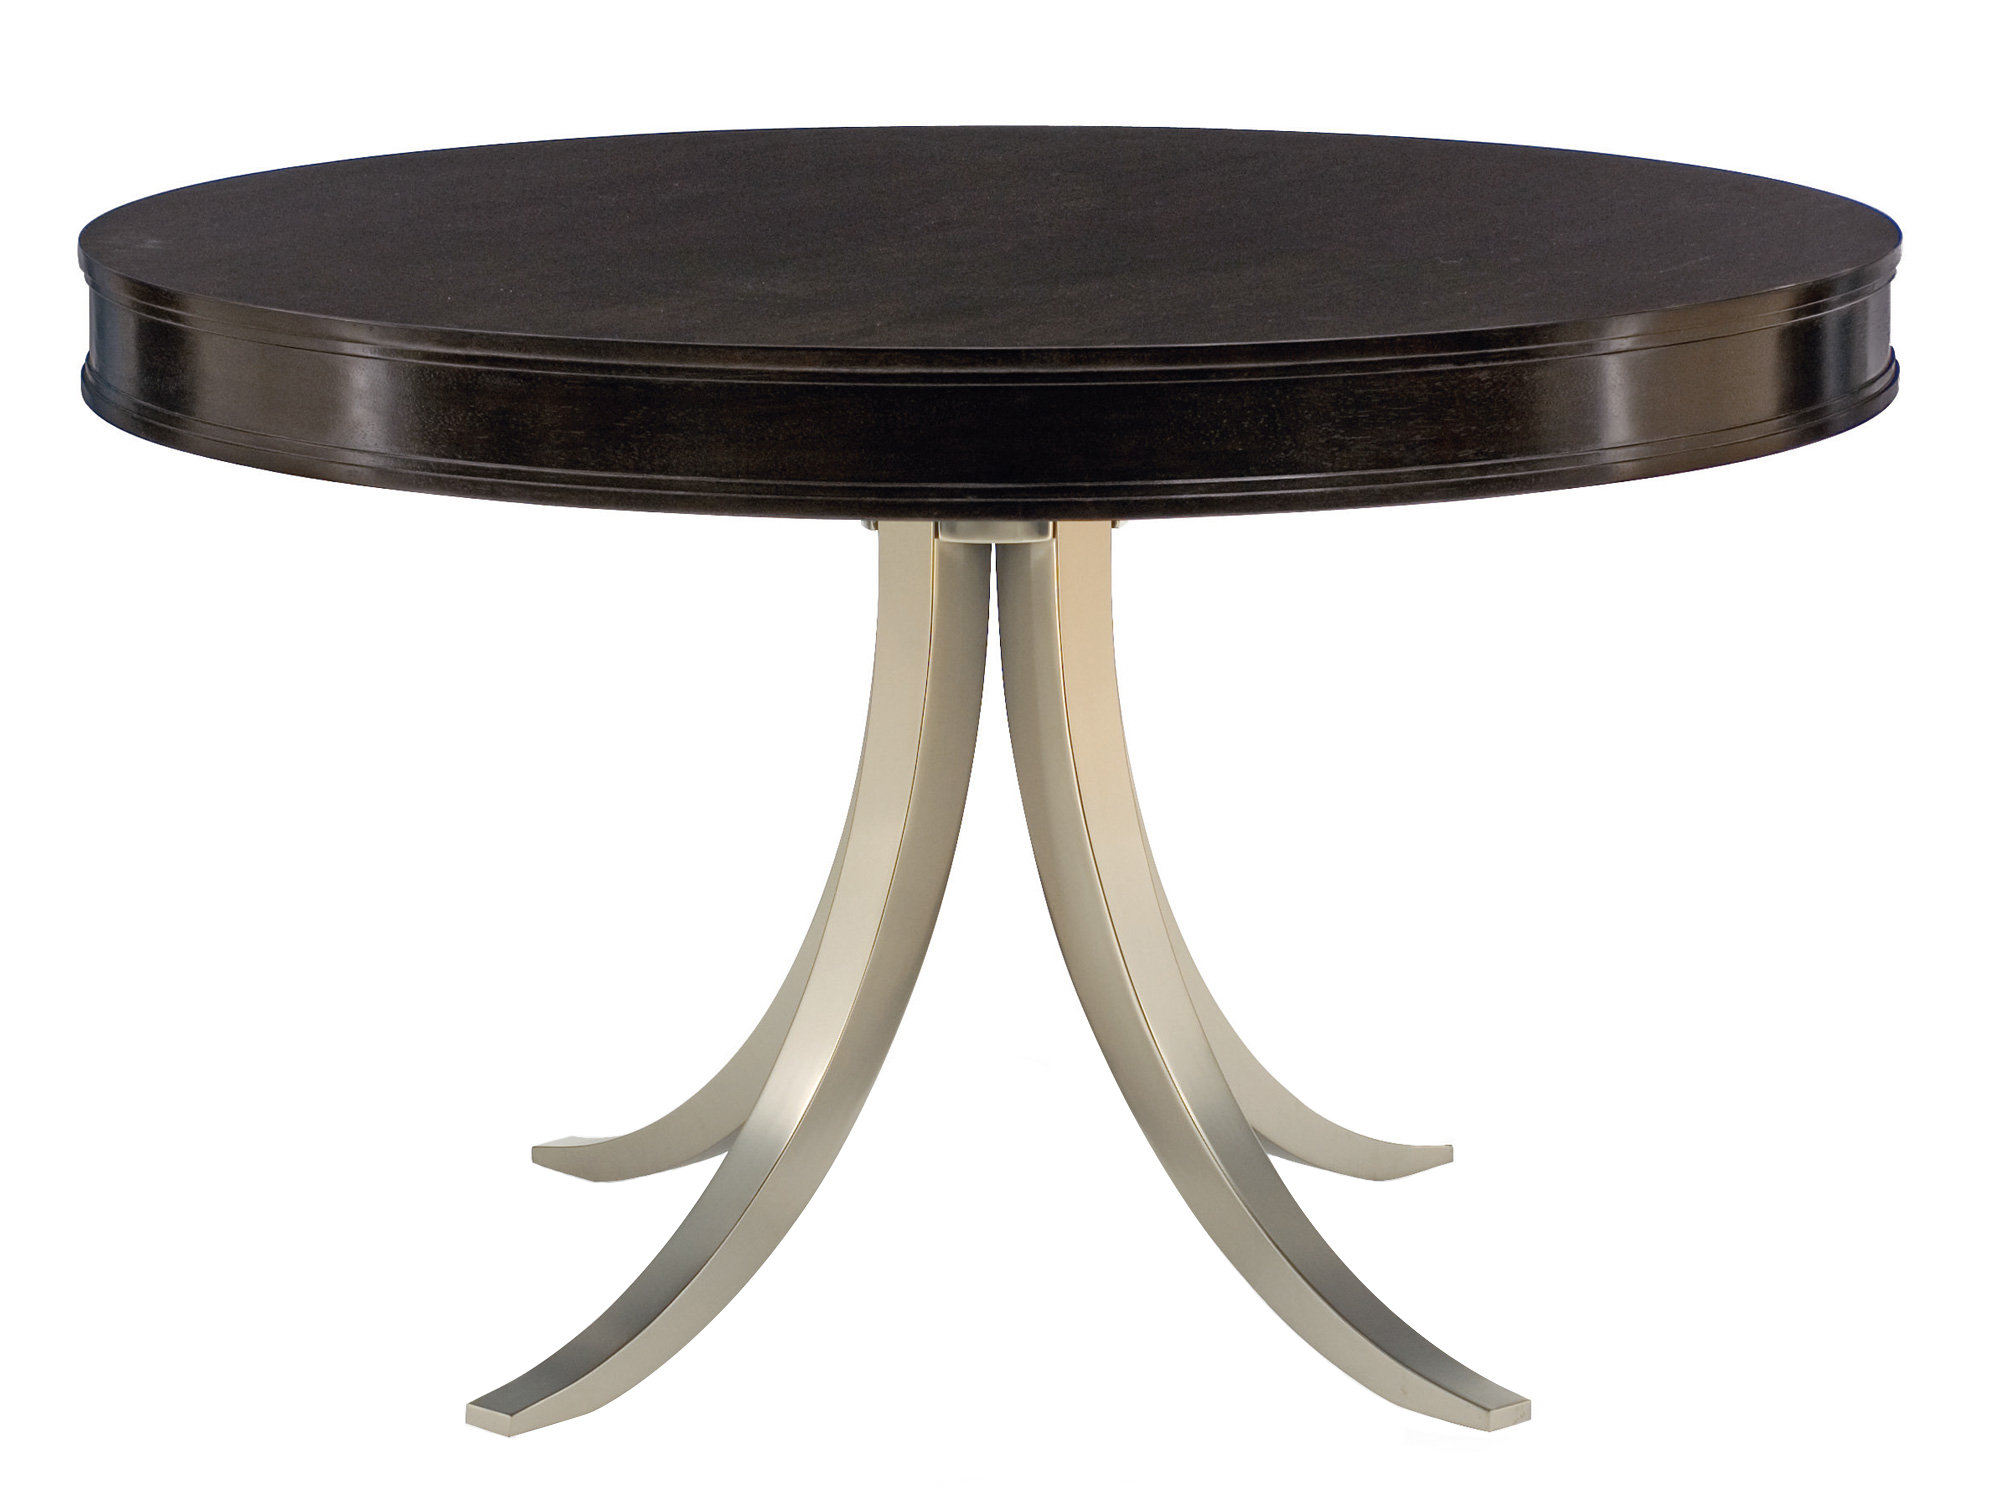 Round Wood Tables Images 10 Beautiful Interior Designs